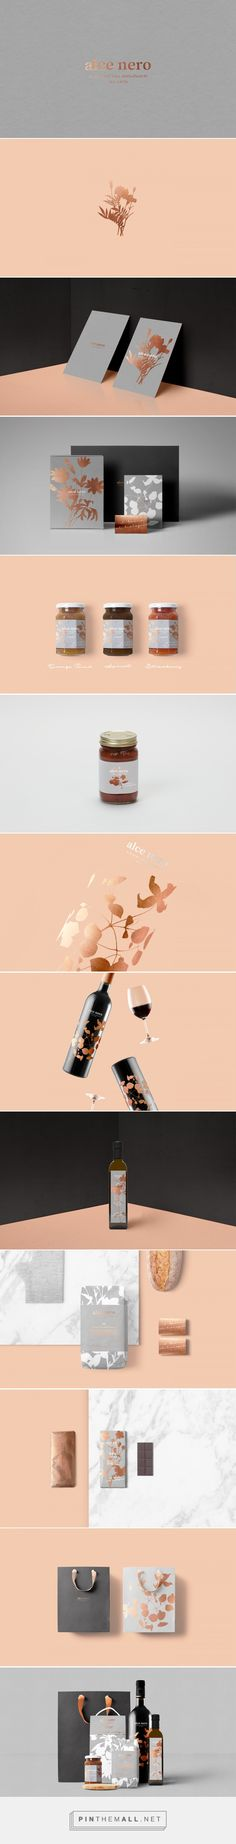 Alce Nero | Packaging Redesign on Behance - created via https://pinthemall.net